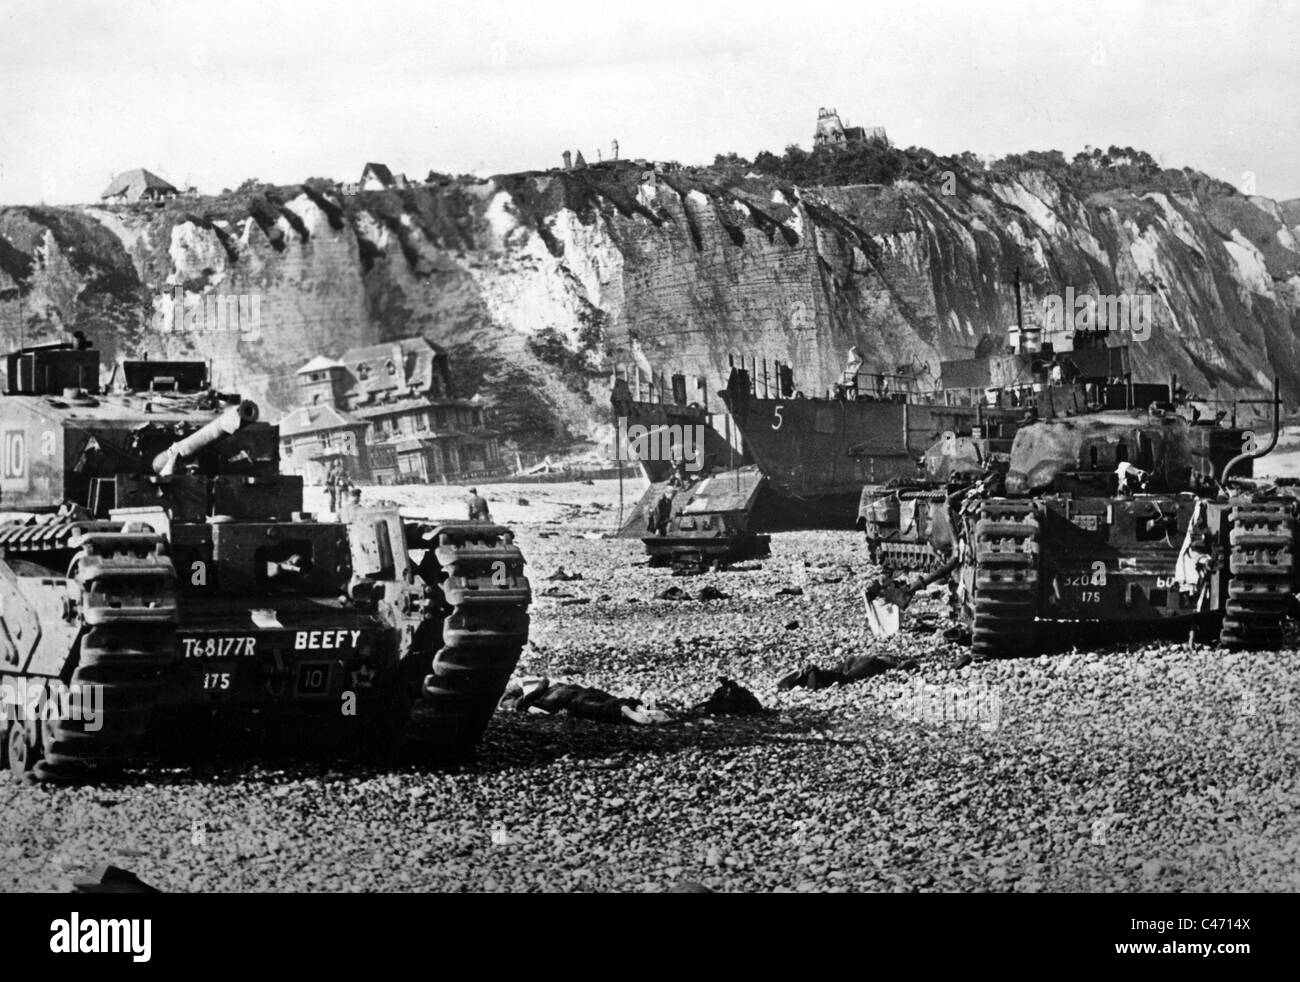 battle dieppe essay The battle of sicily was the opening move in the italian campaign of the second world war  at the time of the dieppe raid in aug 1942, many in.